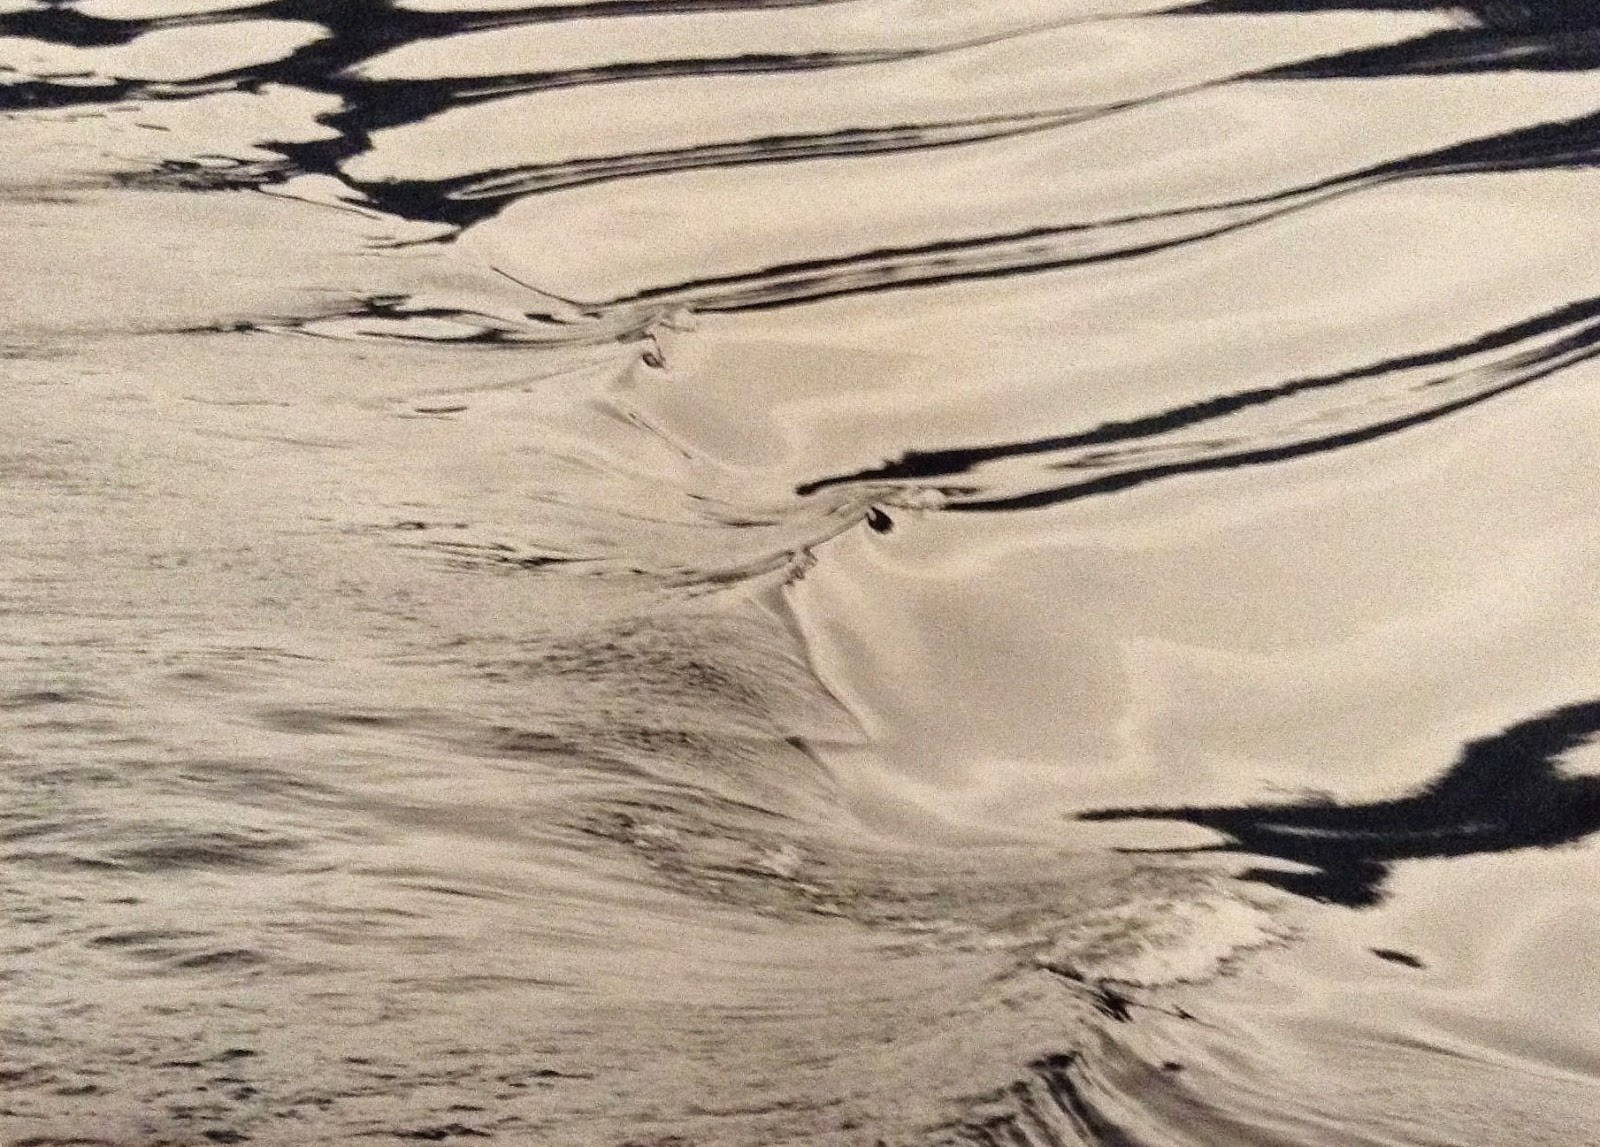 rippling water, Siegfried Lauterwasser